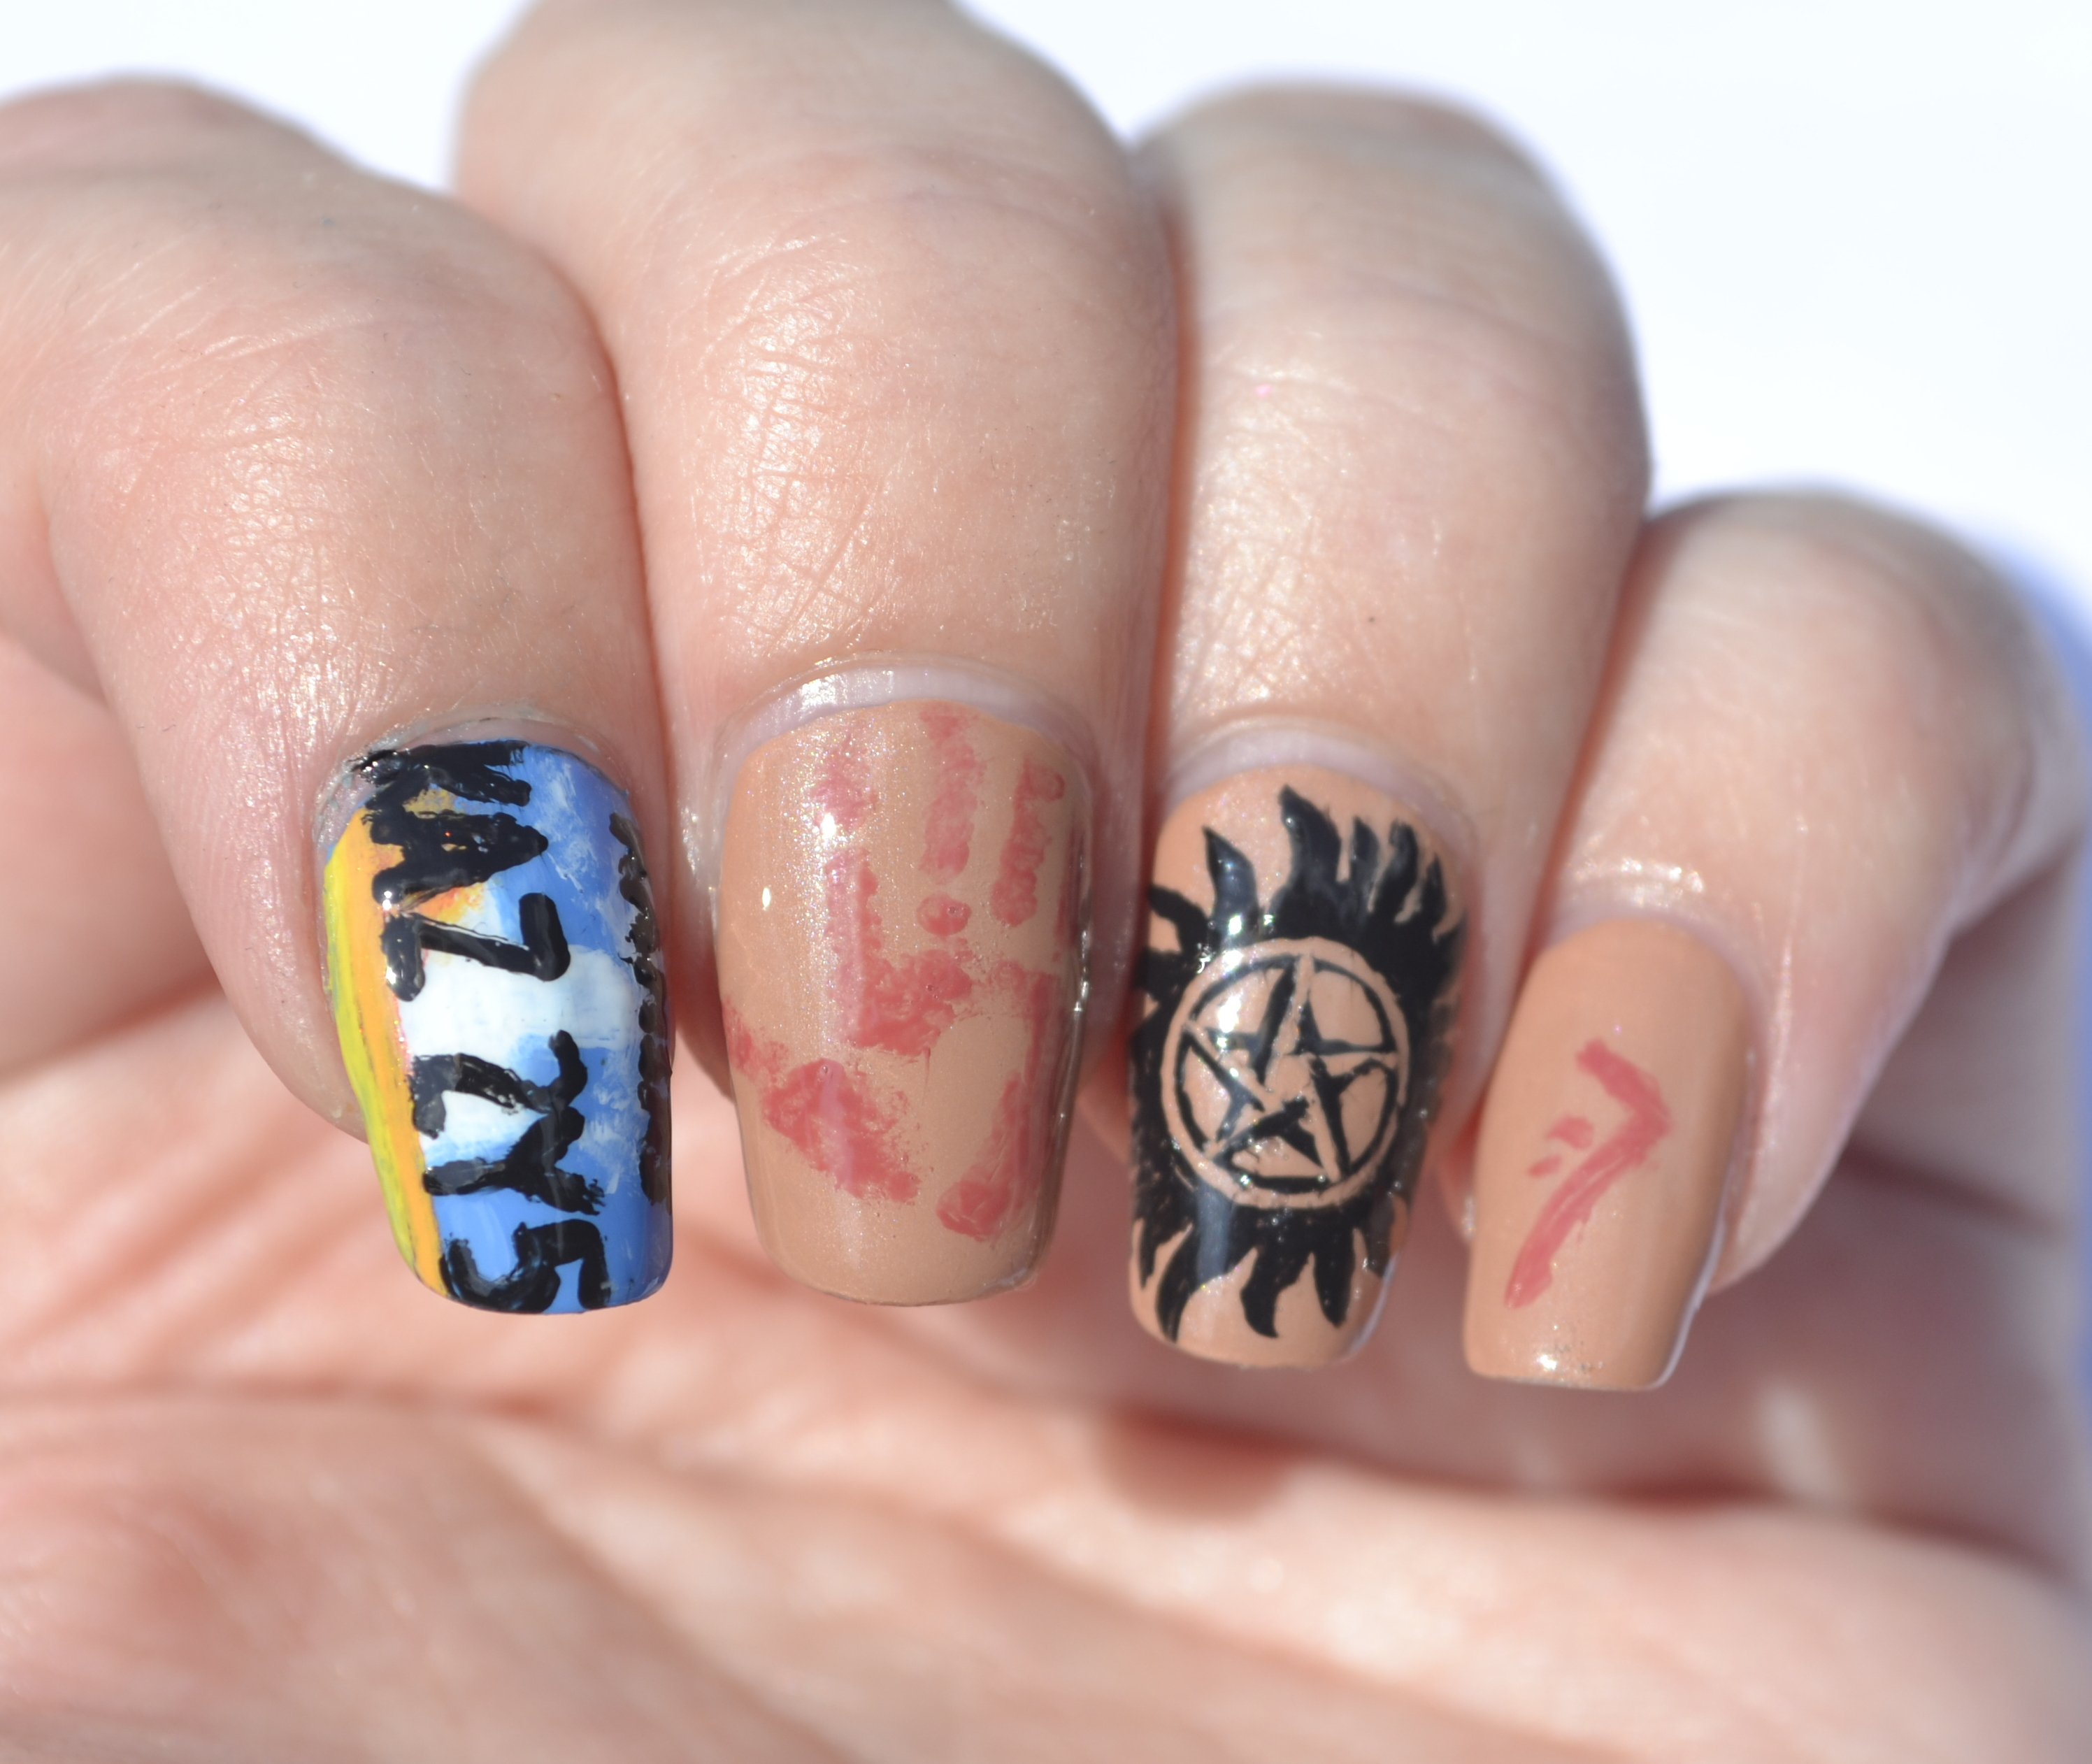 31 day challenge day 29 inspired by the supernatural nails the 31dc day 29 supernatural nails 3 prinsesfo Image collections